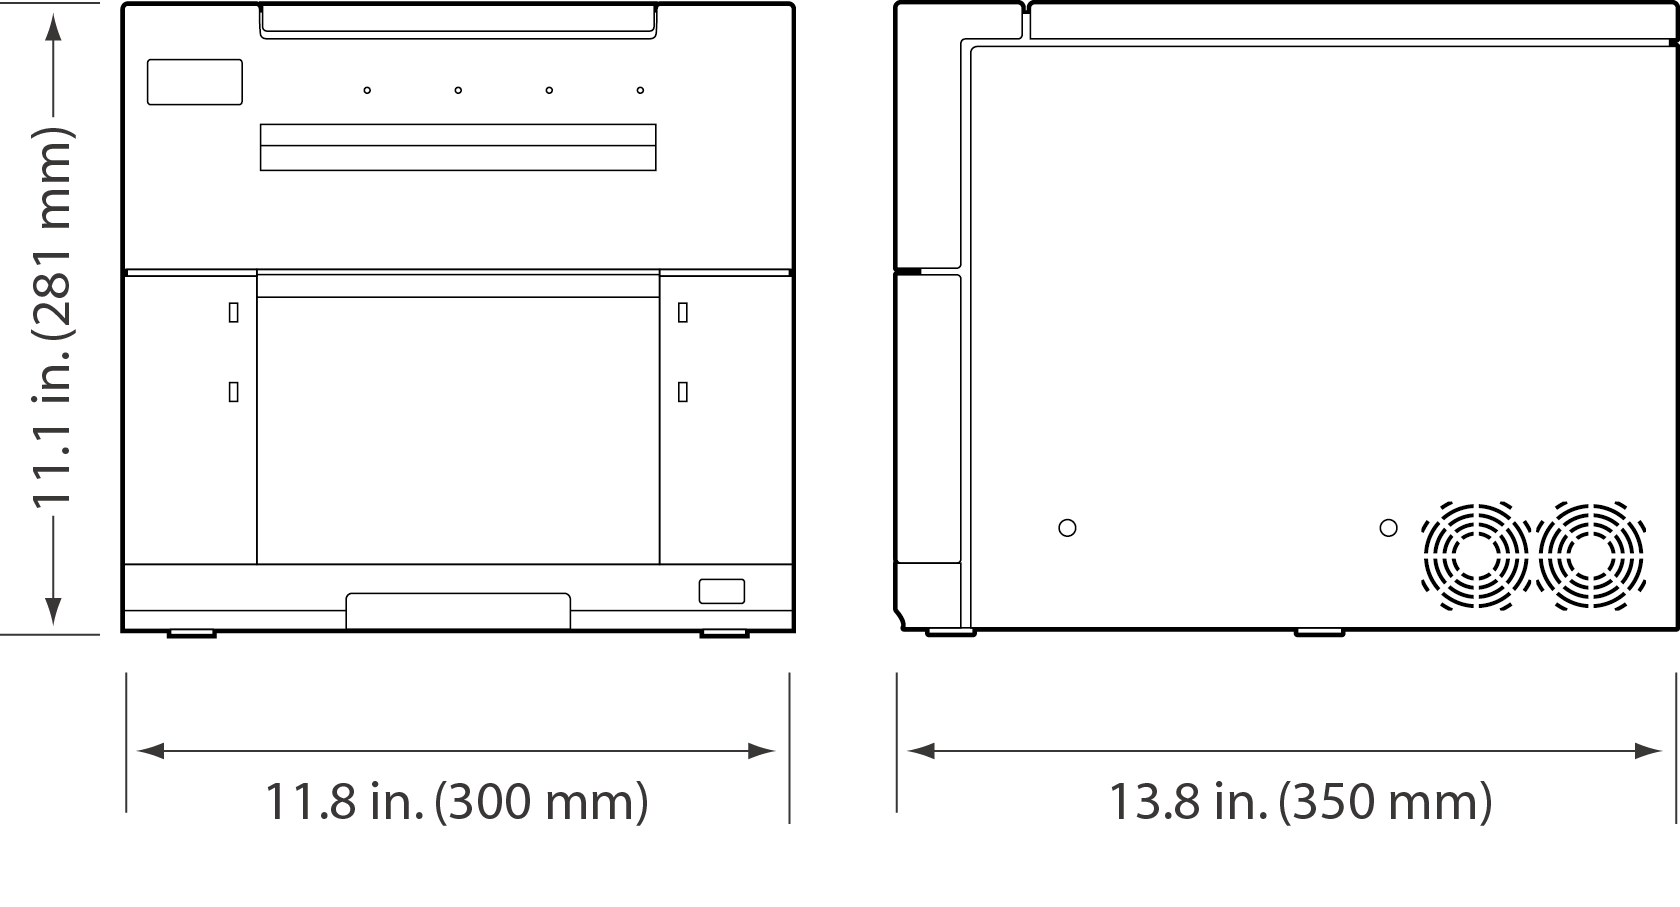 [image] Dimensions of ASK-500, top and bottom